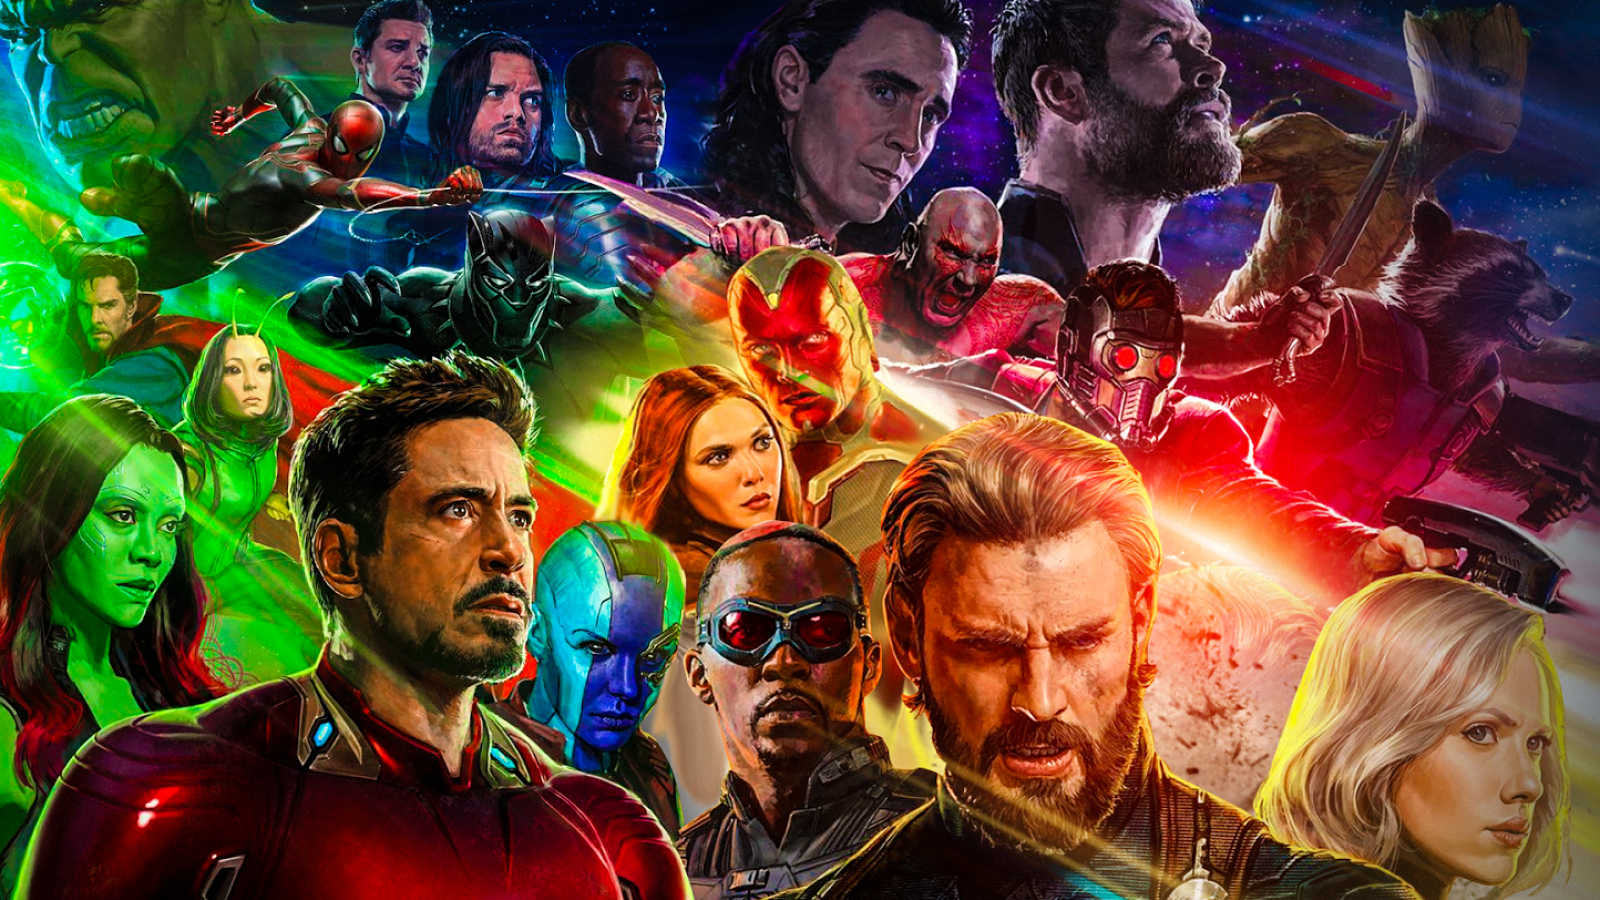 Filmy - Avengers: Infinity War  Avengers Strażnicy Galaktyki Groot Vin Diesel Thor Chris Hemsworth Loki Tom Hiddleston Rocket Raccoon Bradley Cooper Star Lord Peter Quill Chris Pratt Drax The Destroyer Dave Bautista Vision (Marvel Comics) Paul Bettany Kapitan Ameryka Steve Rogers Chris Evans Scarlet Witch Wanda Maximoff Elizabeth Olsen Scarlett Johansson Black Widow Natasha Romanoff Falcon (Marvel Comics) Anthony Mackie Sam Wilson Thanos Josh Brolin Hulk Bruce Banner Mark Ruffalo Spider-Man Peter Parker Tom Holland Iron Spider Winter Soldier Bucky Barnes Sebastian Stan Hawkeye Jeremy Renner Clint Barton War Machine Don Cheadle James Rhodes Black Panther (Marvel Comics) T'Challa Chadwick Boseman Doktor Strange Benedict Cumberbatch Stephen Strange Zoe Saldana Gamora Mantis (Marvel Comics) Pom Klementieff Nebula (Marvel Comics) Karen Gillan Tony Stark Iron Man Robert Downey Jr. Tapeta